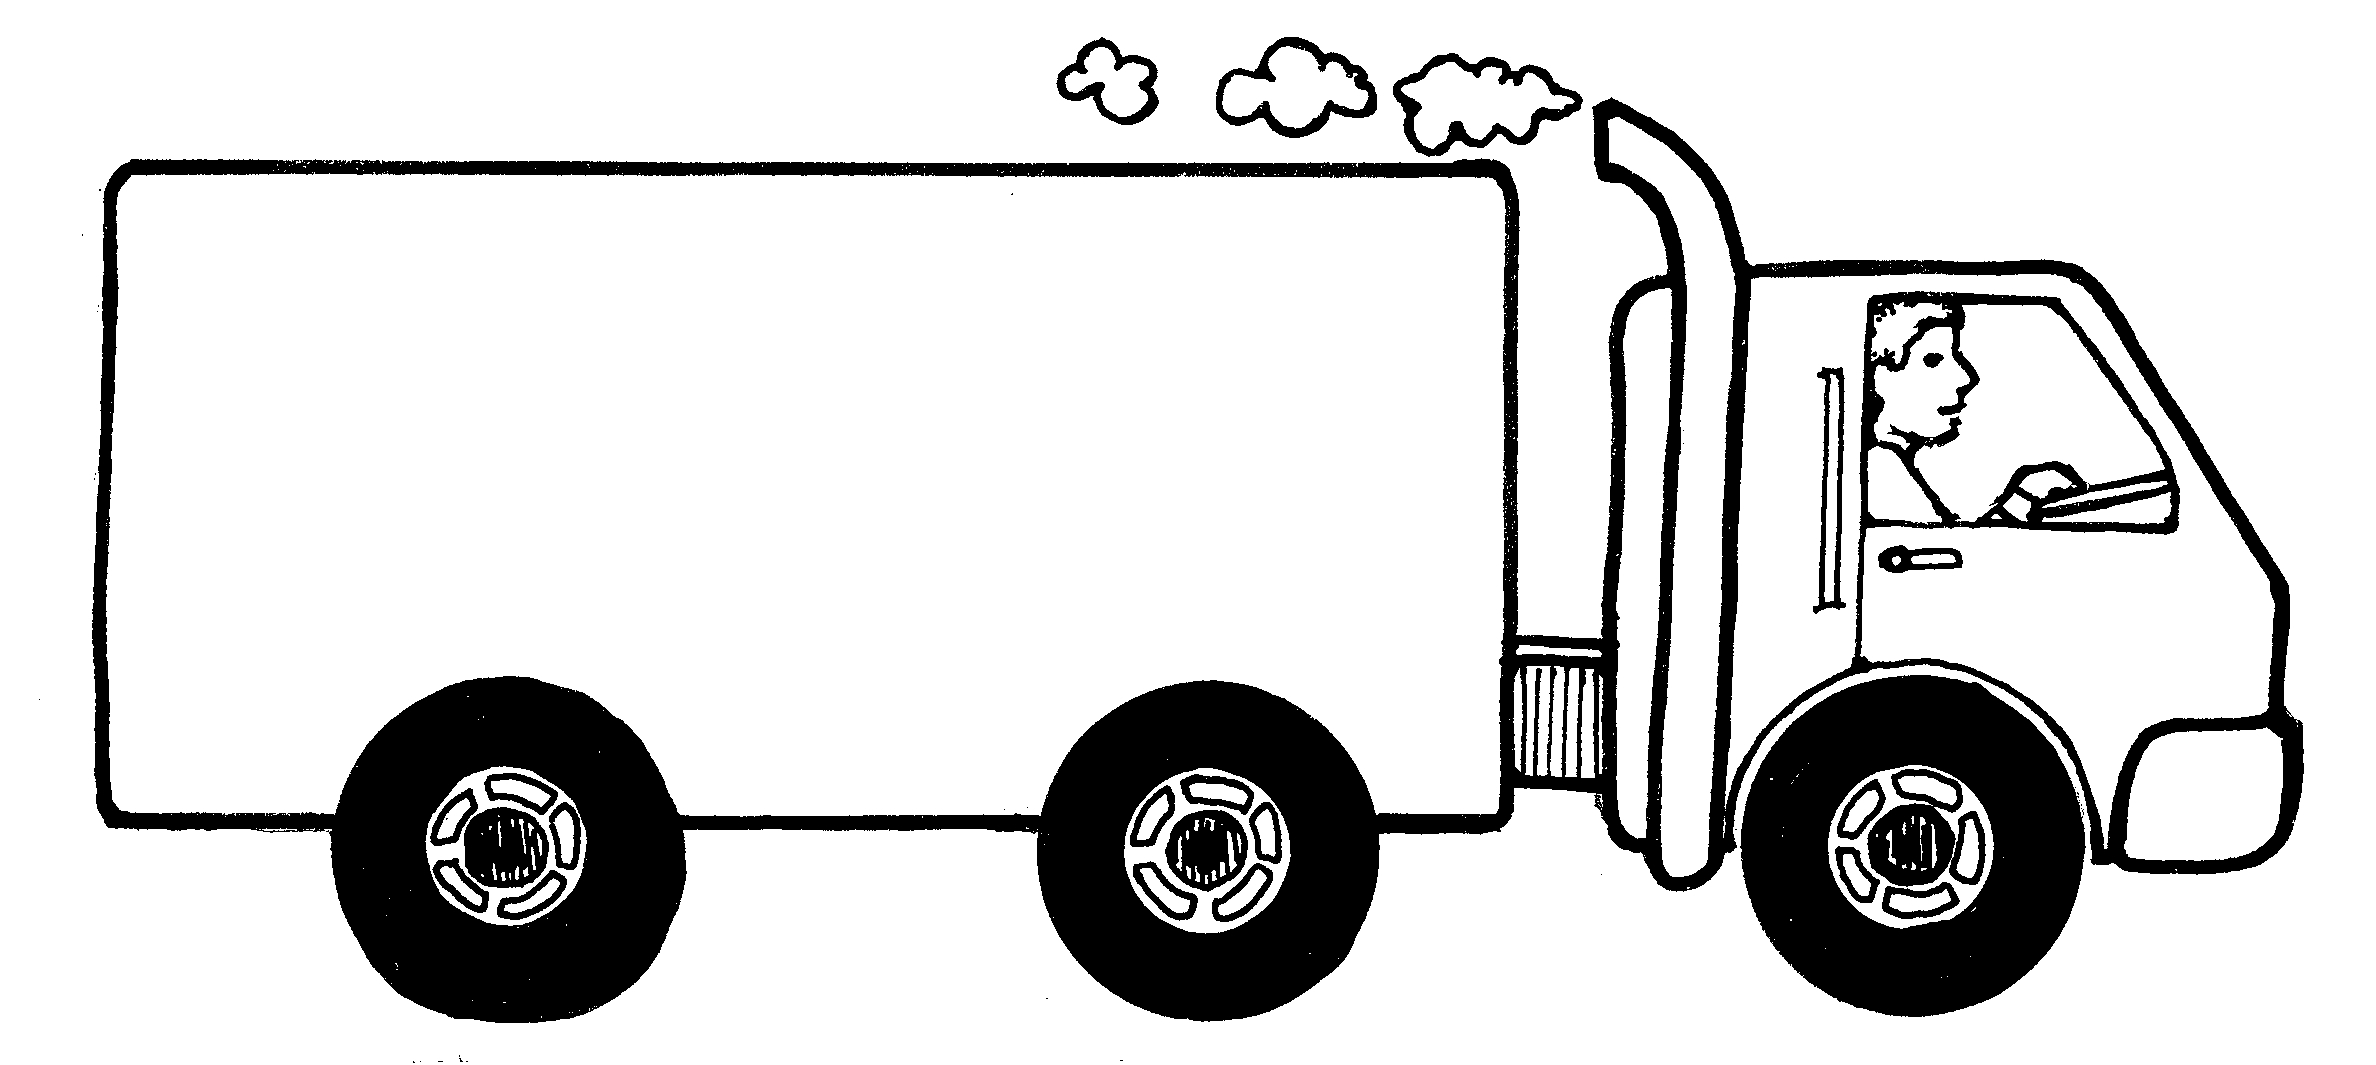 Free Moving Van Images Download Free Clip Art Free Clip